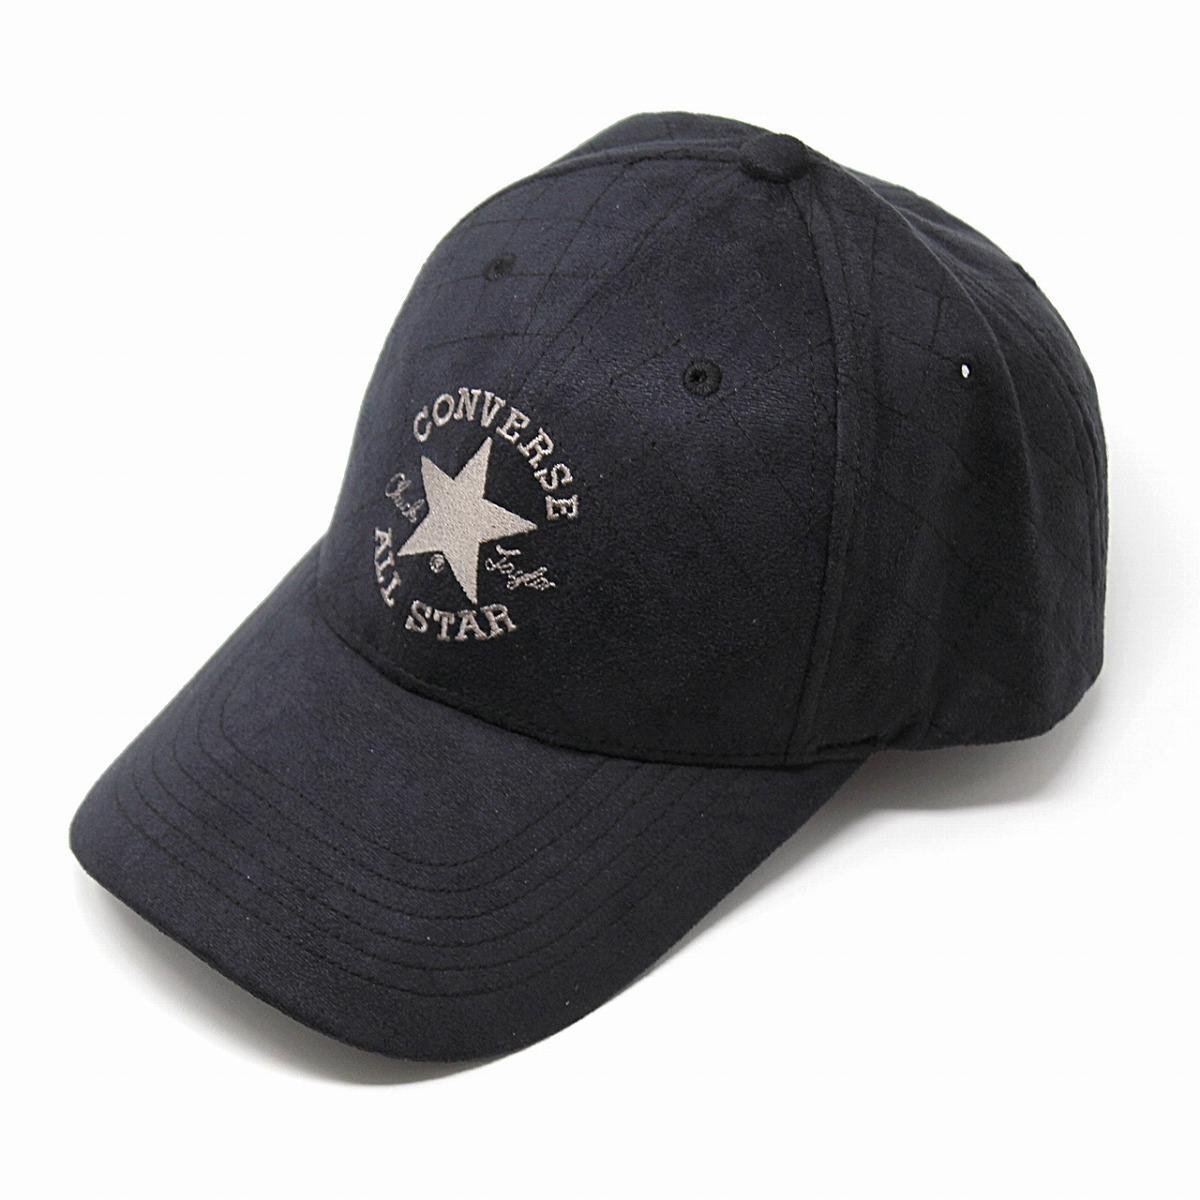 Converse Men's Snapback Embroidered Classic Hat Cap, ICON710